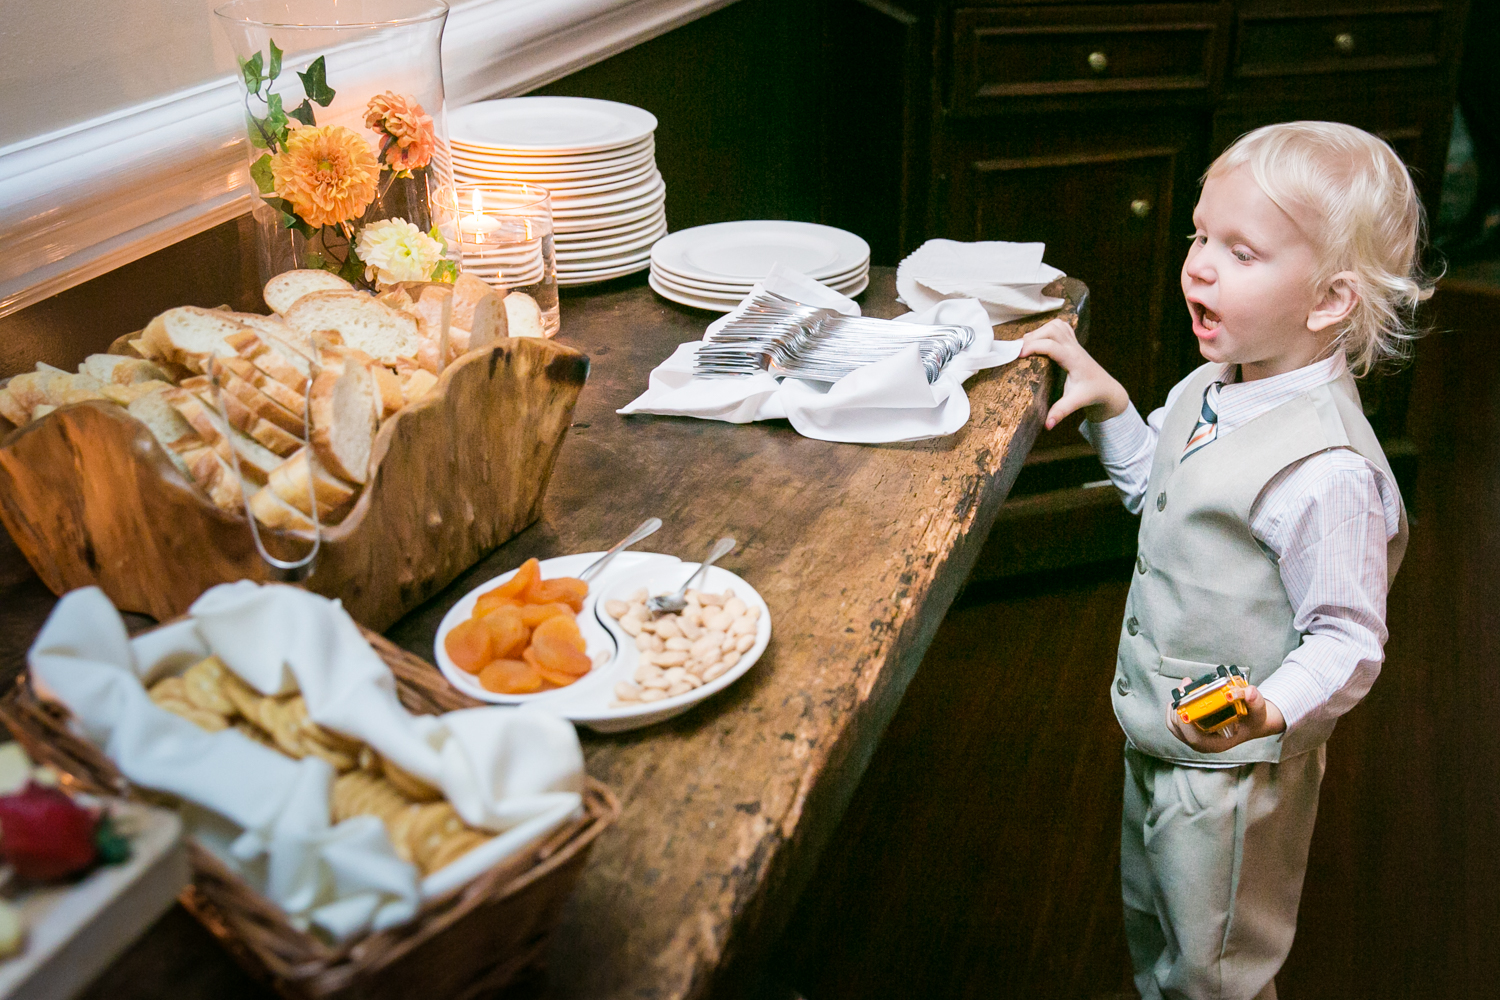 Little boy amazed by food at buffet